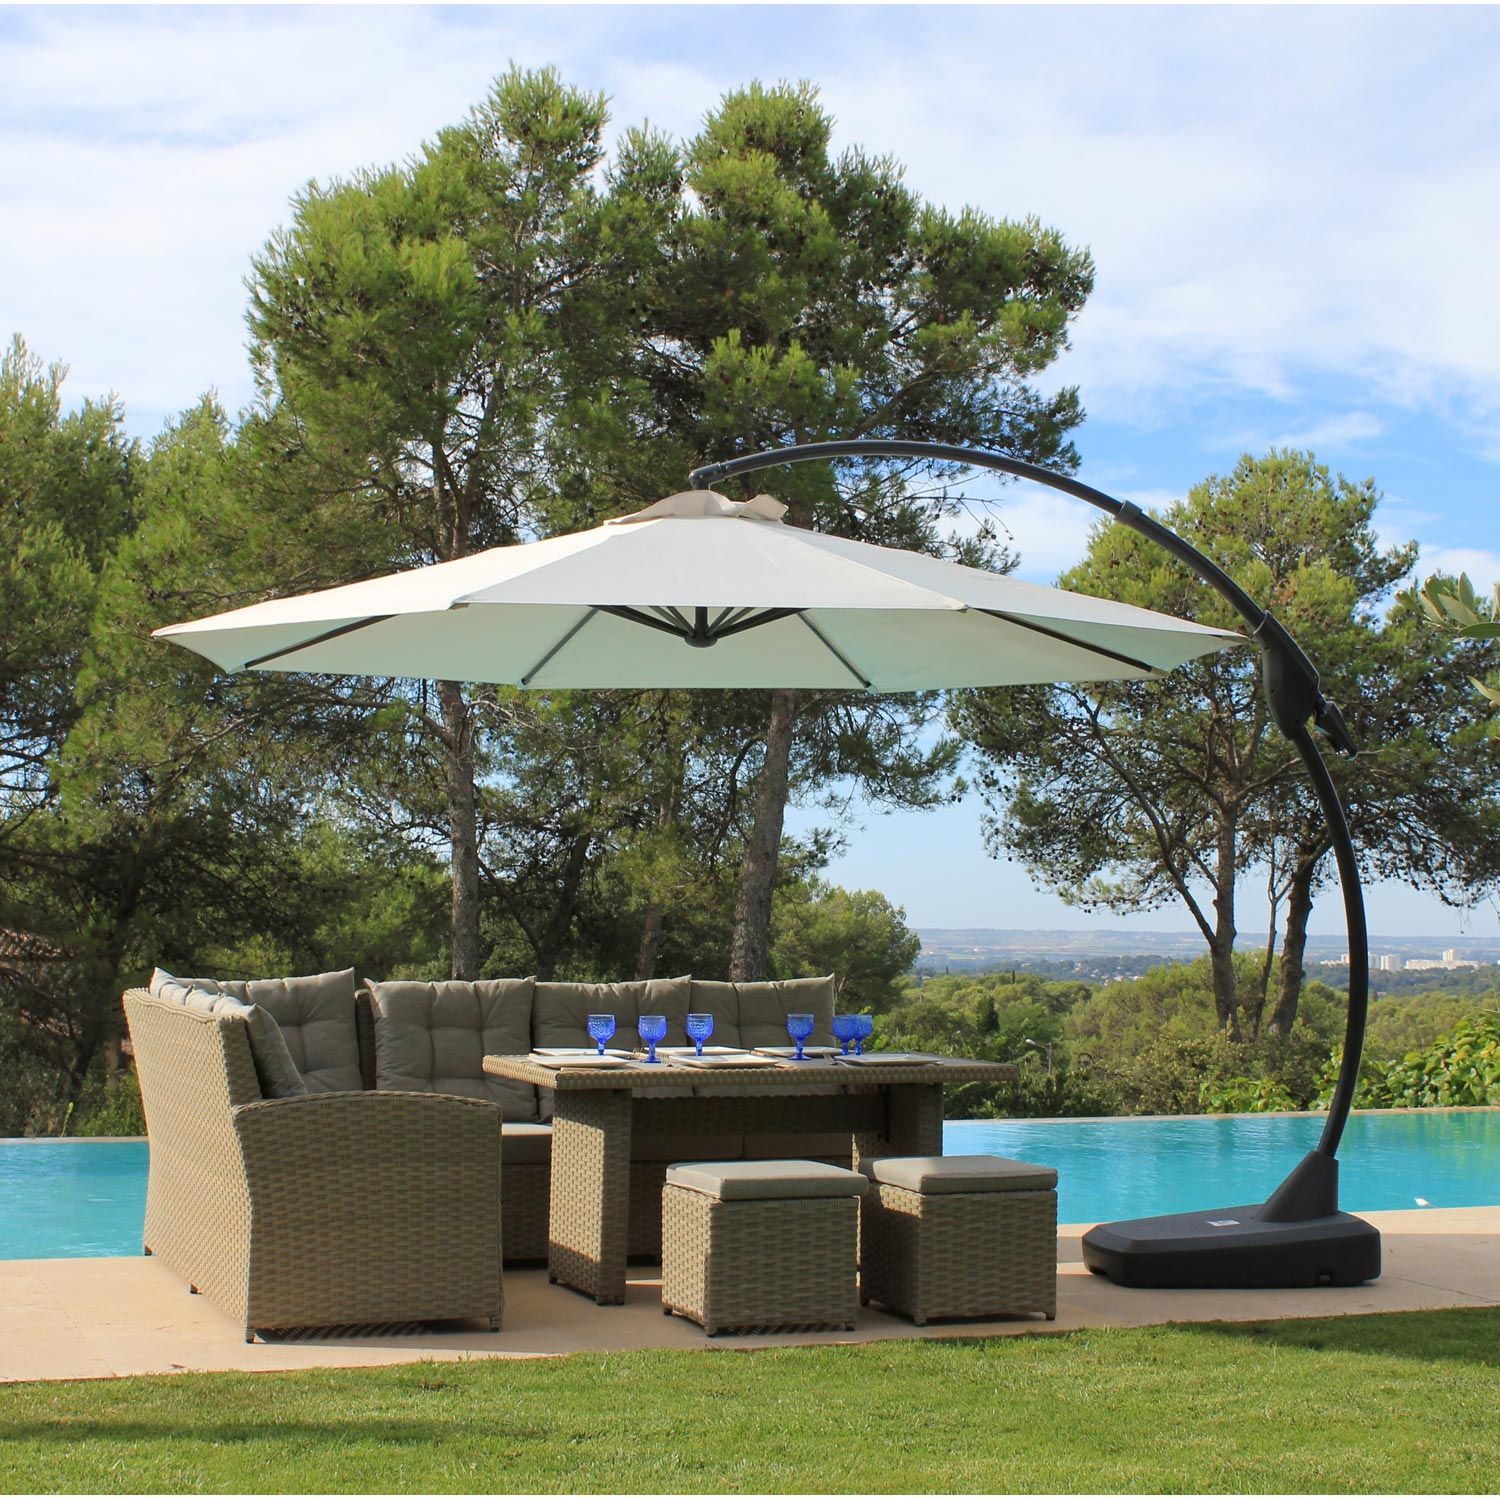 parasols deportes leroy merlin 28 images parasol deporte leroy merlin 3 parasol d233port233. Black Bedroom Furniture Sets. Home Design Ideas